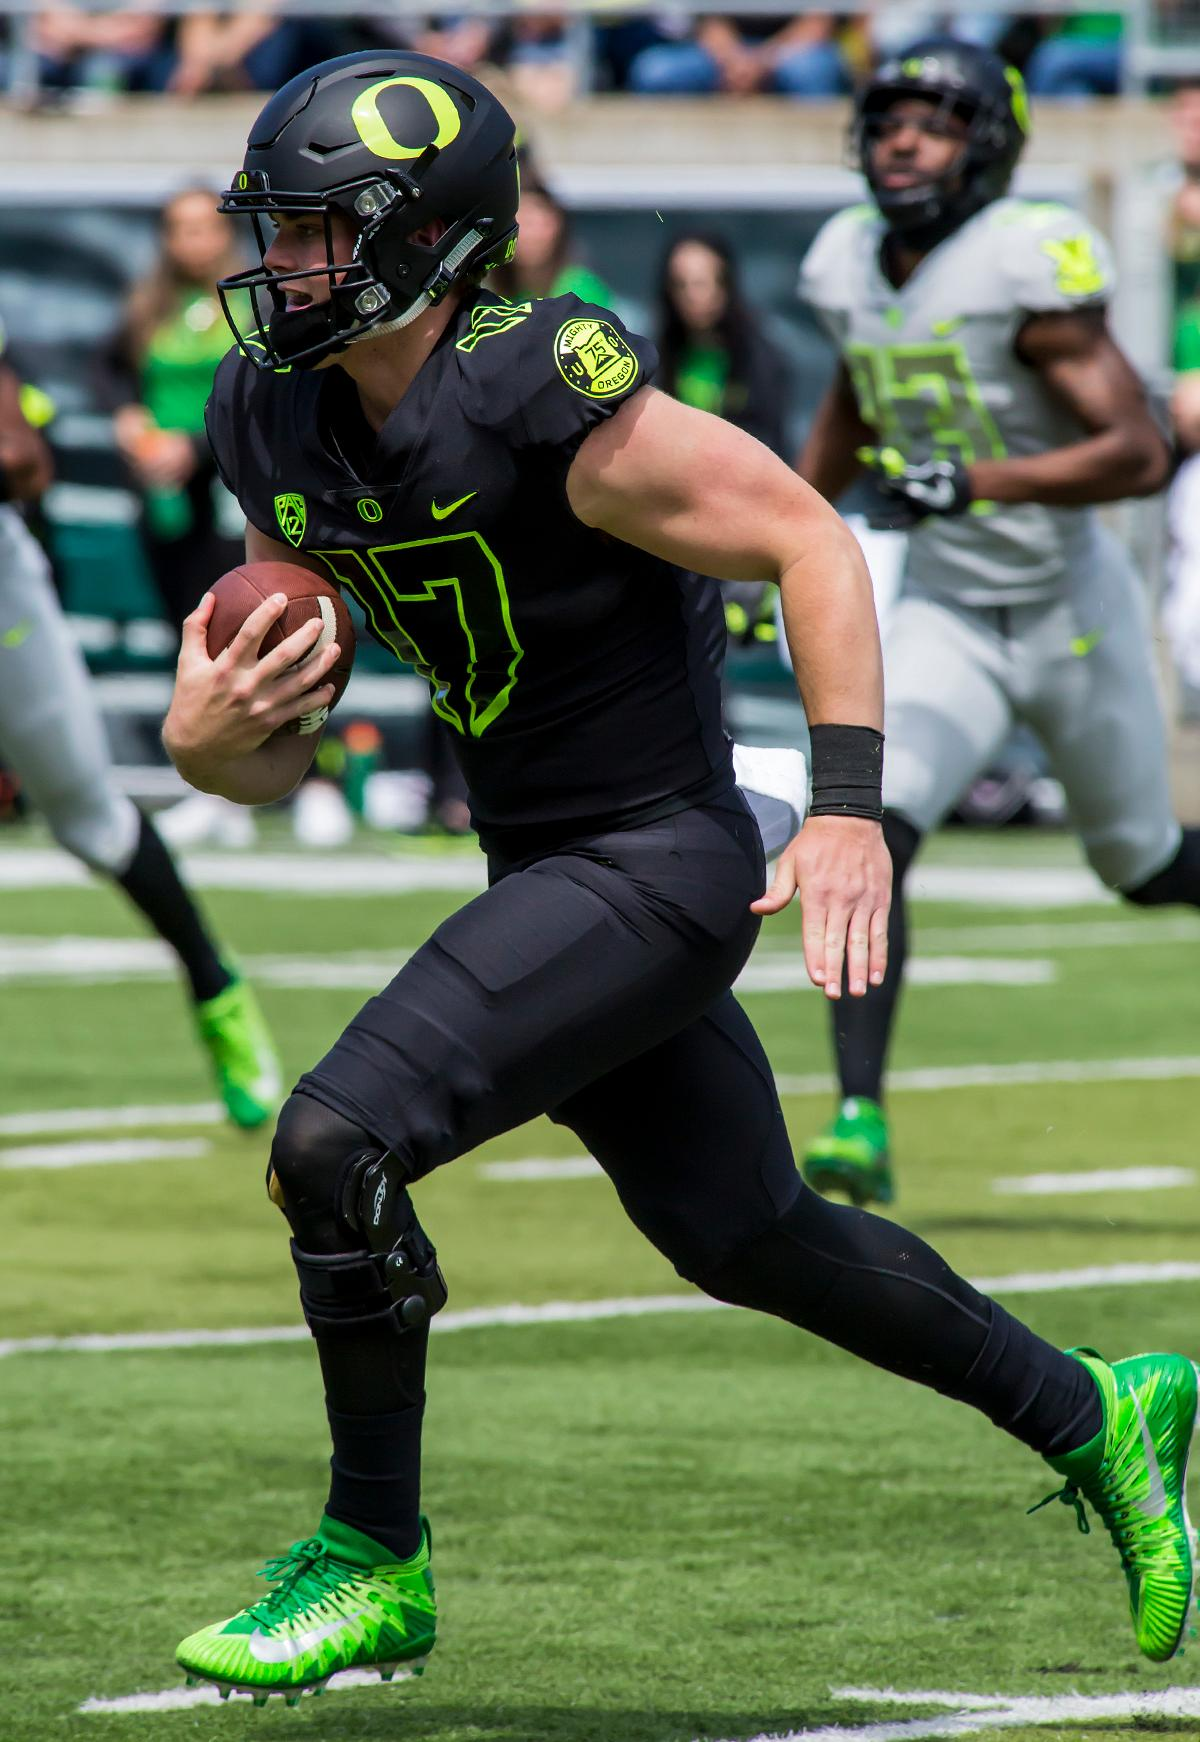 Team Brave quarter back Braxton Burmeister (#17) runs with the ball in a attempt to outpace the defense. The 2017 Oregon Ducks Spring Game provided fans their first glimpse at the team under new Head Coach Willie Taggart's direction. Team Free defeated Team Brave 34-11 on a sunny dat at Autzen Stadium in Eugene, Oregon. Photo by Ben Lonergan, Oregon News Lab